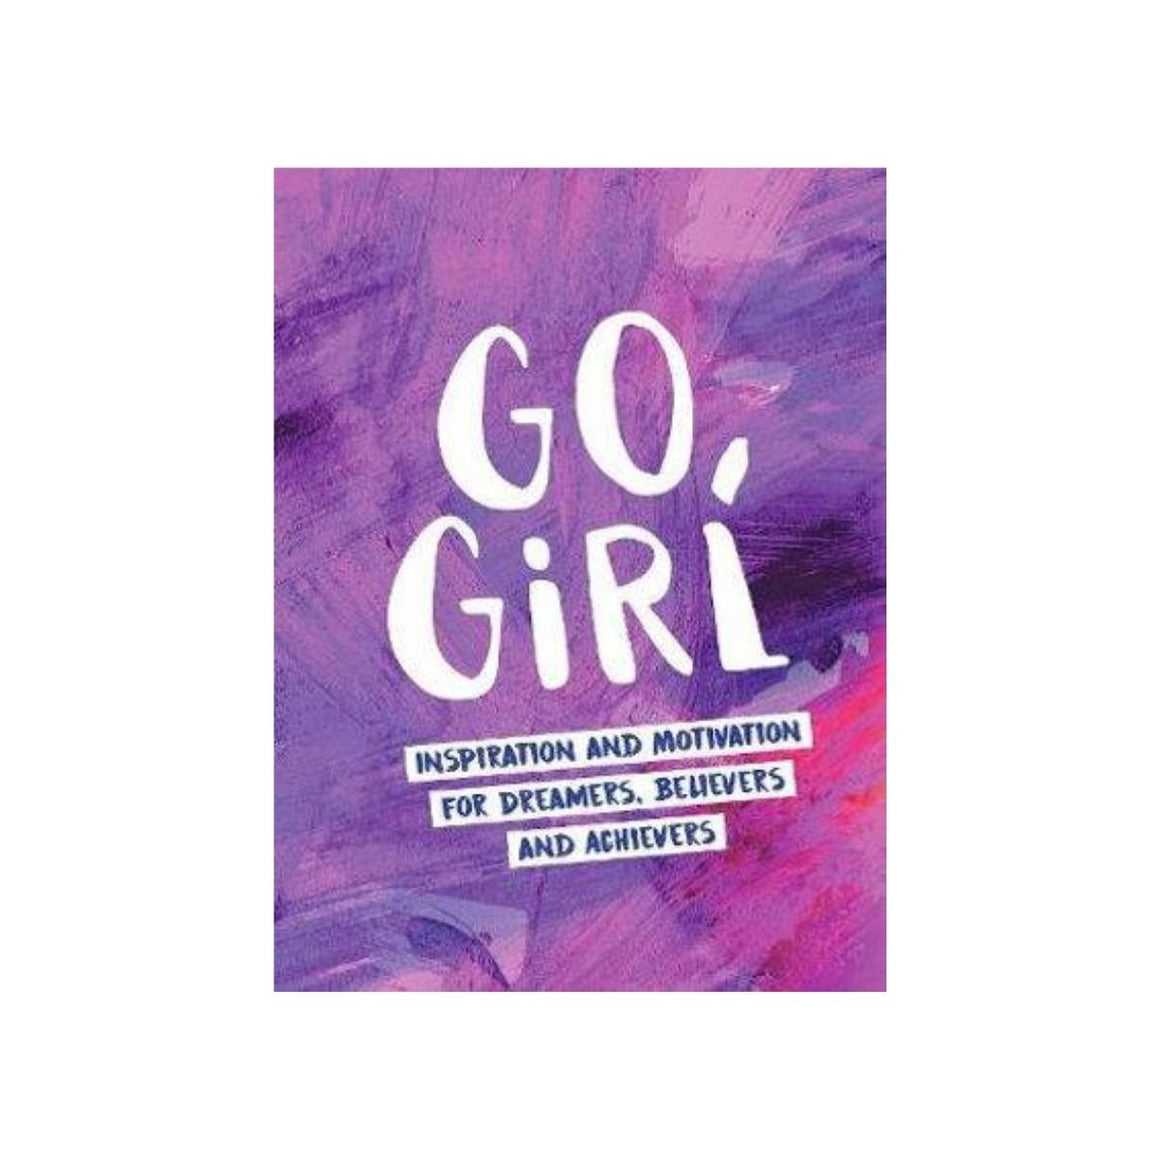 Book cover featuring a purple cover with white text featuring the words Go, Girl: Inspiration and motivation for dreamers, believers and achievers